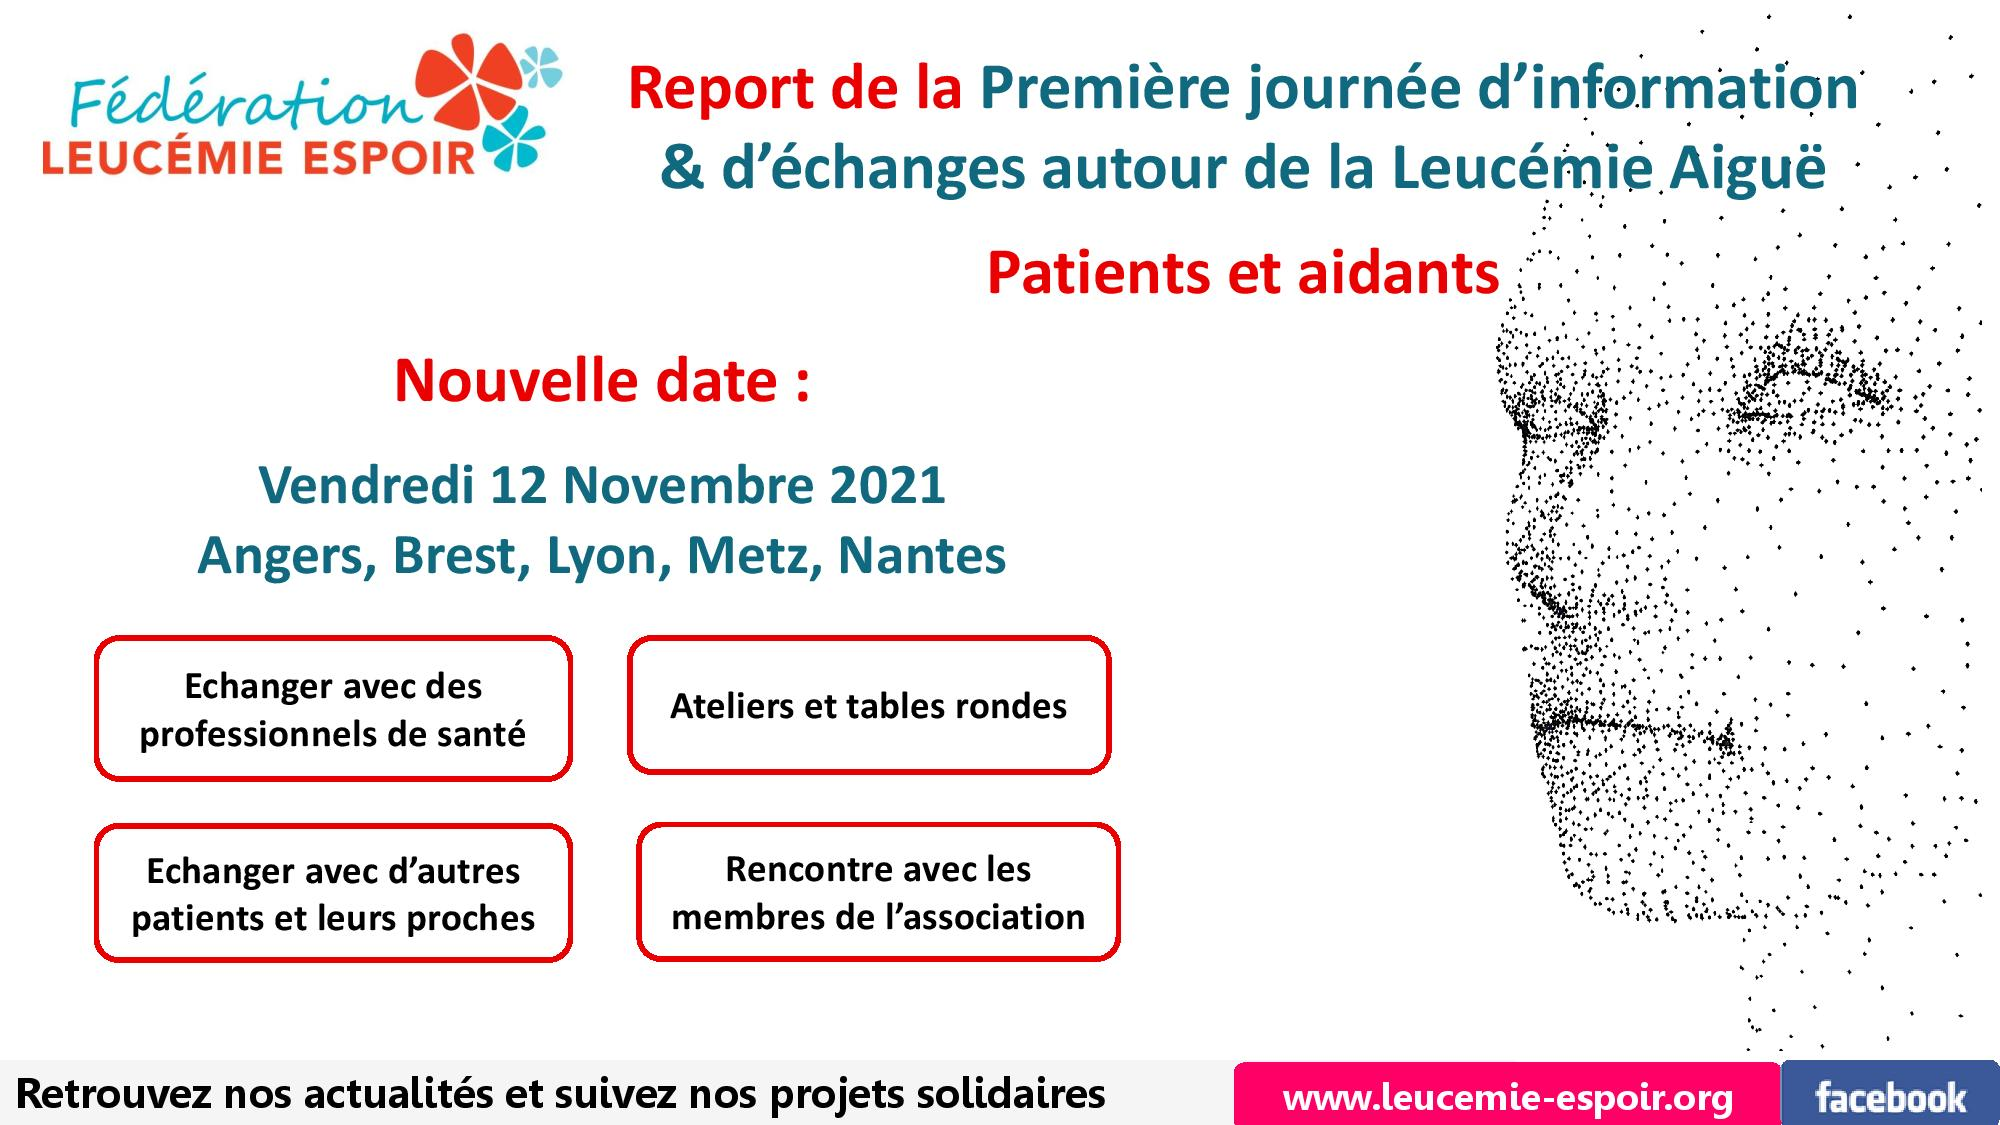 REPORT DE LA PREMIERE JOURNEE PATIENTS ET AIDANTS LEUCEMIE AIGUE AU 12/11/2021